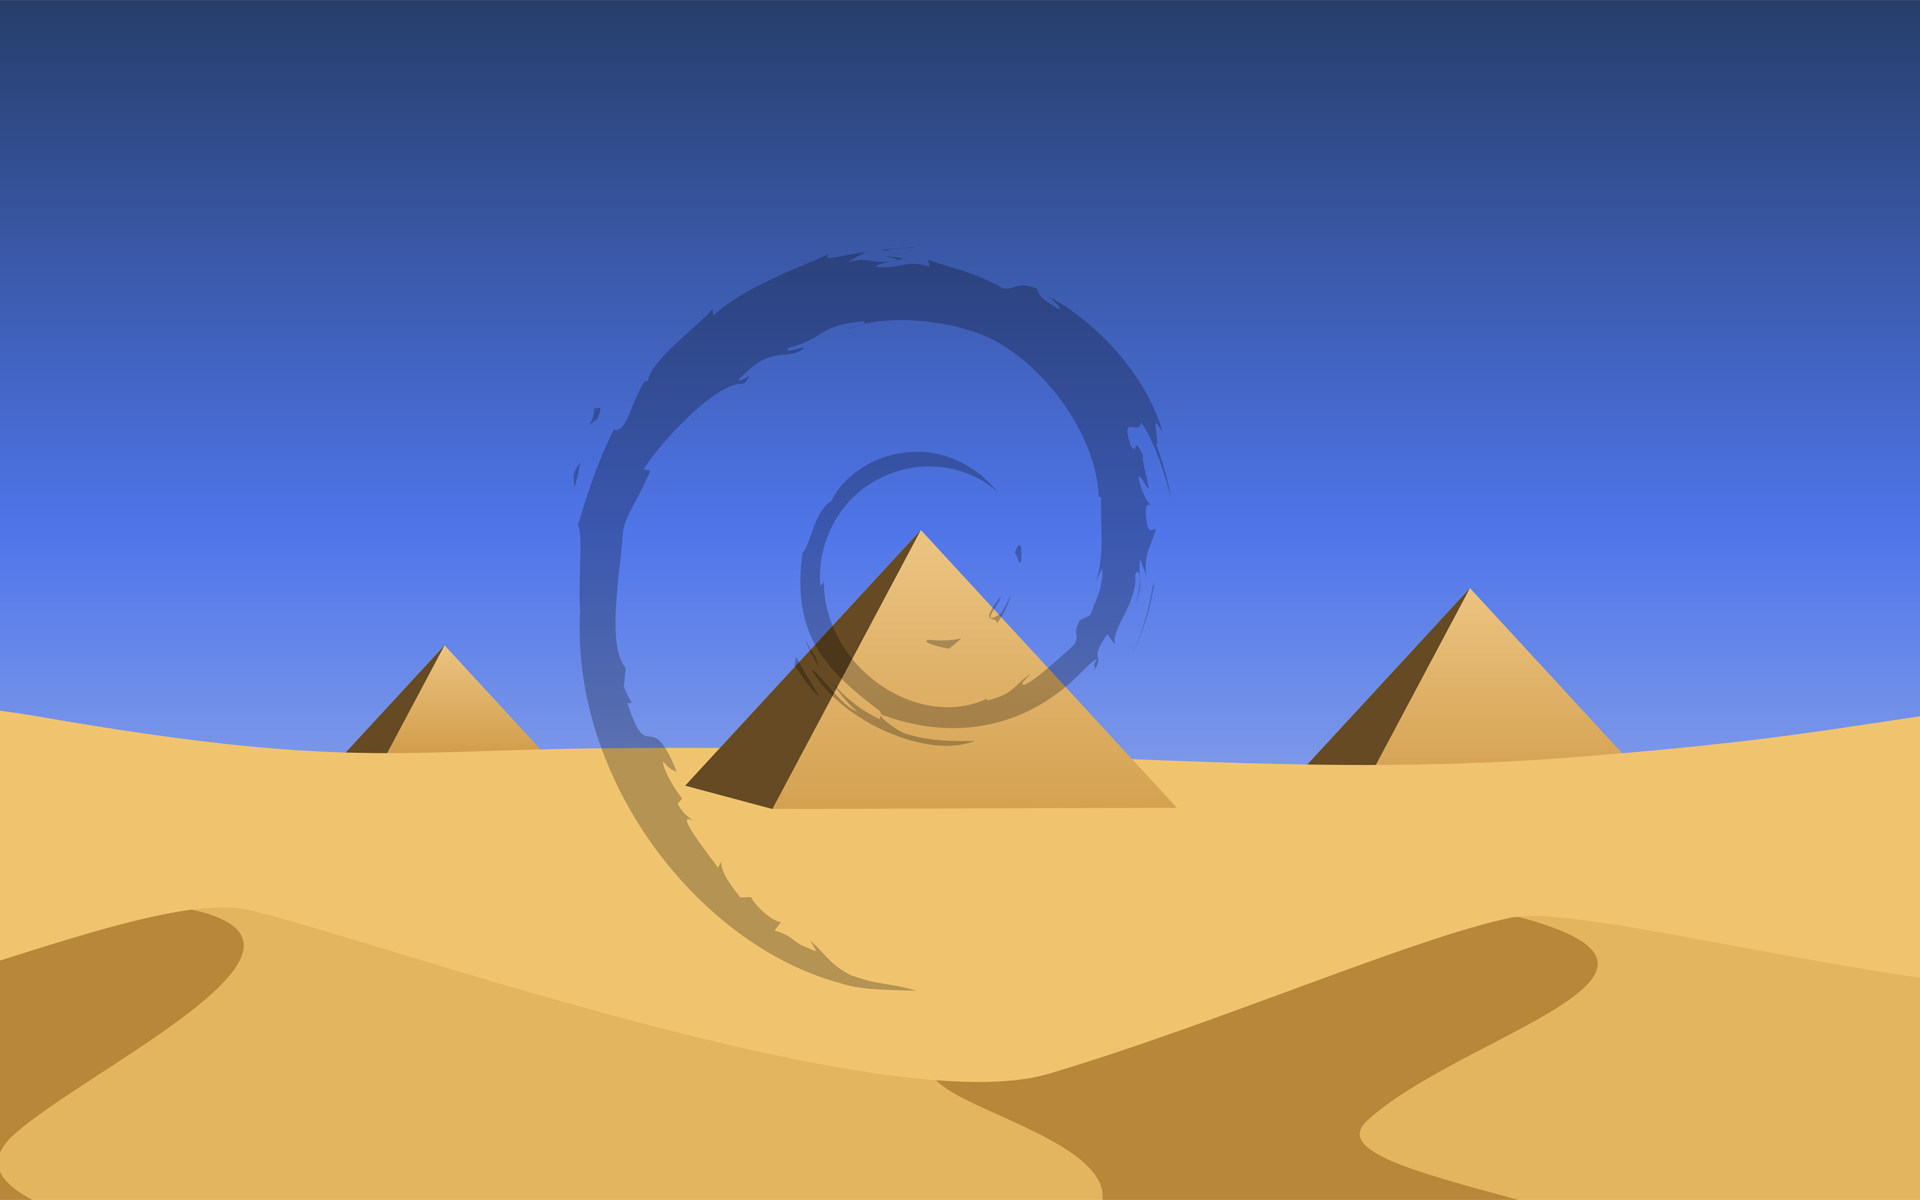 simpleOutlook-pyramids-1920x1200.png